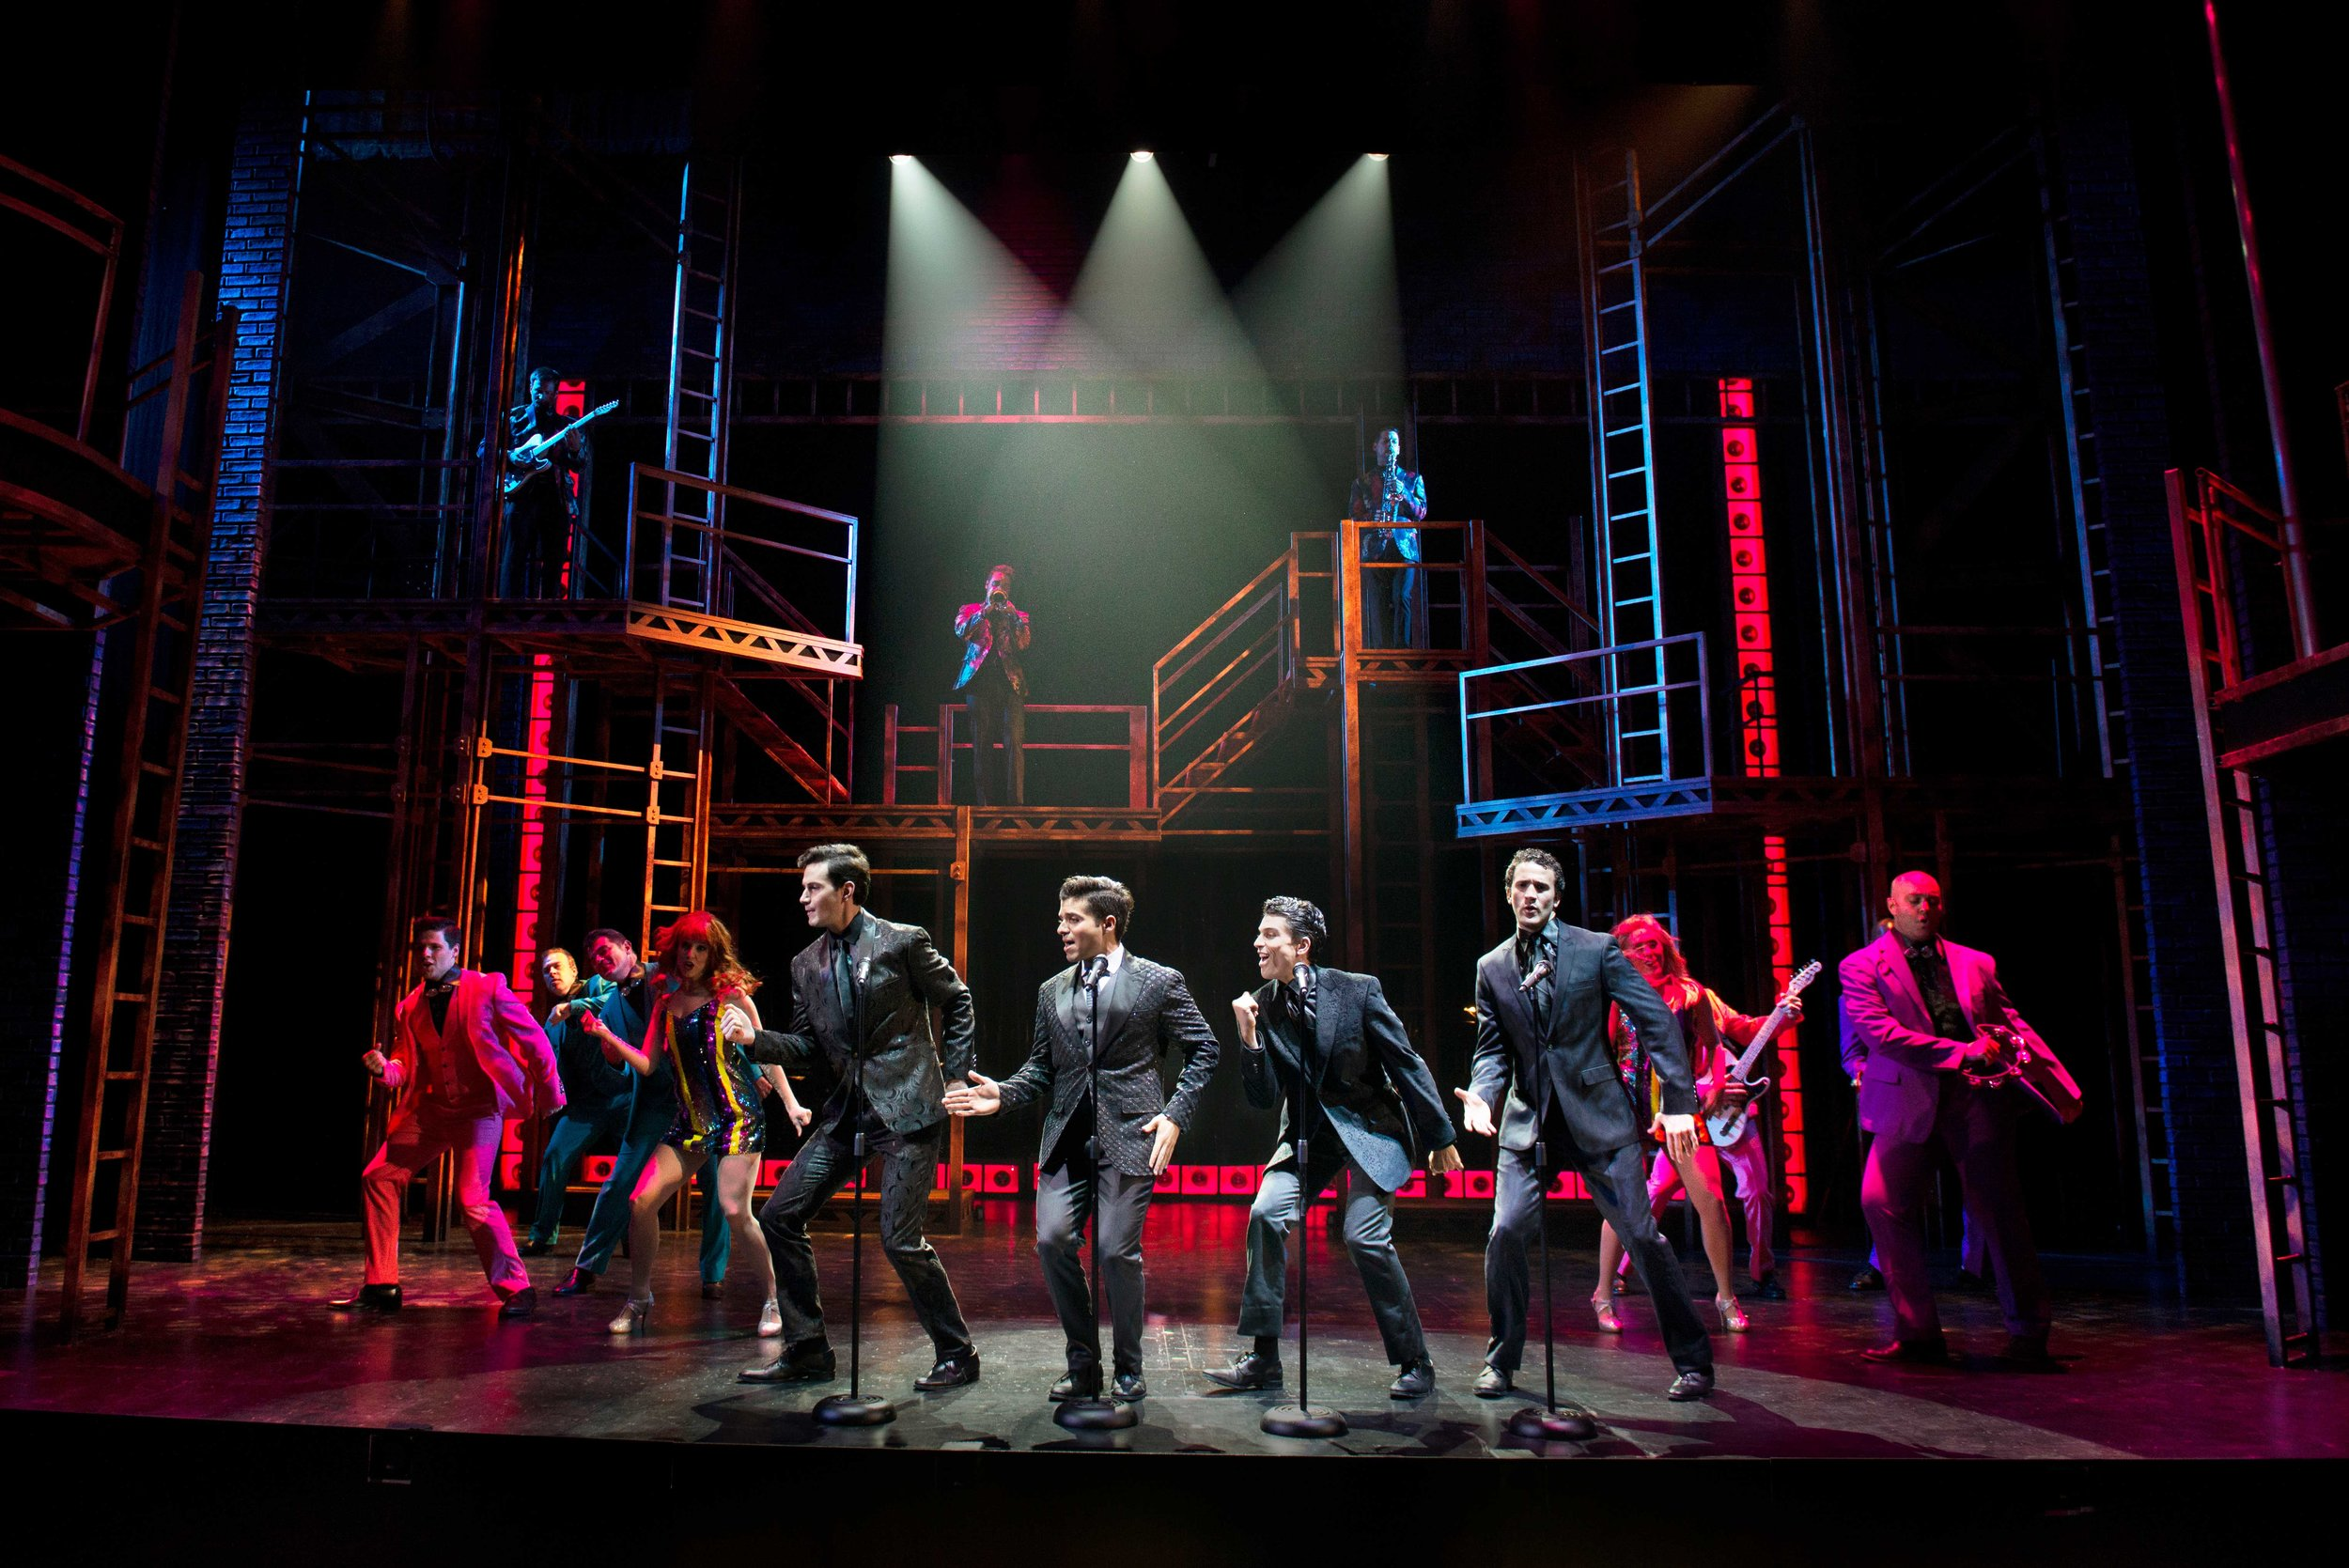 Andy Christopher, Jonathan Mousset, Matt Magnusson, and Matthew Amira in Jersey Boys at the Ogunquit Playhouse, 2018. Photo by Gary Ng.